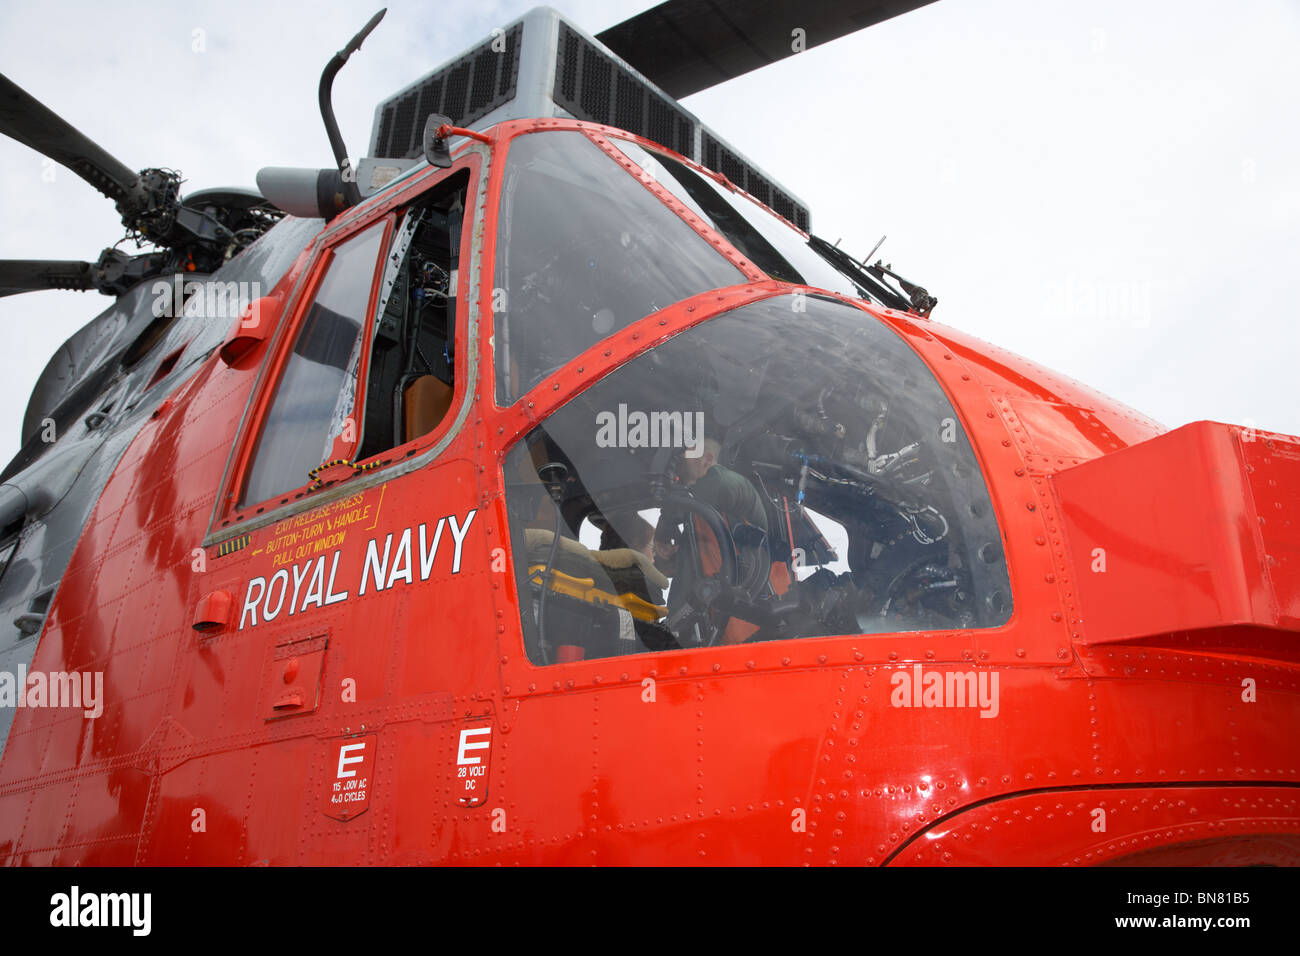 window and cockpit of a Royal Navy Rescue Westland Sea King HU5 helicopter XZ920 visiting Bangor Northern Ireland - Stock Image